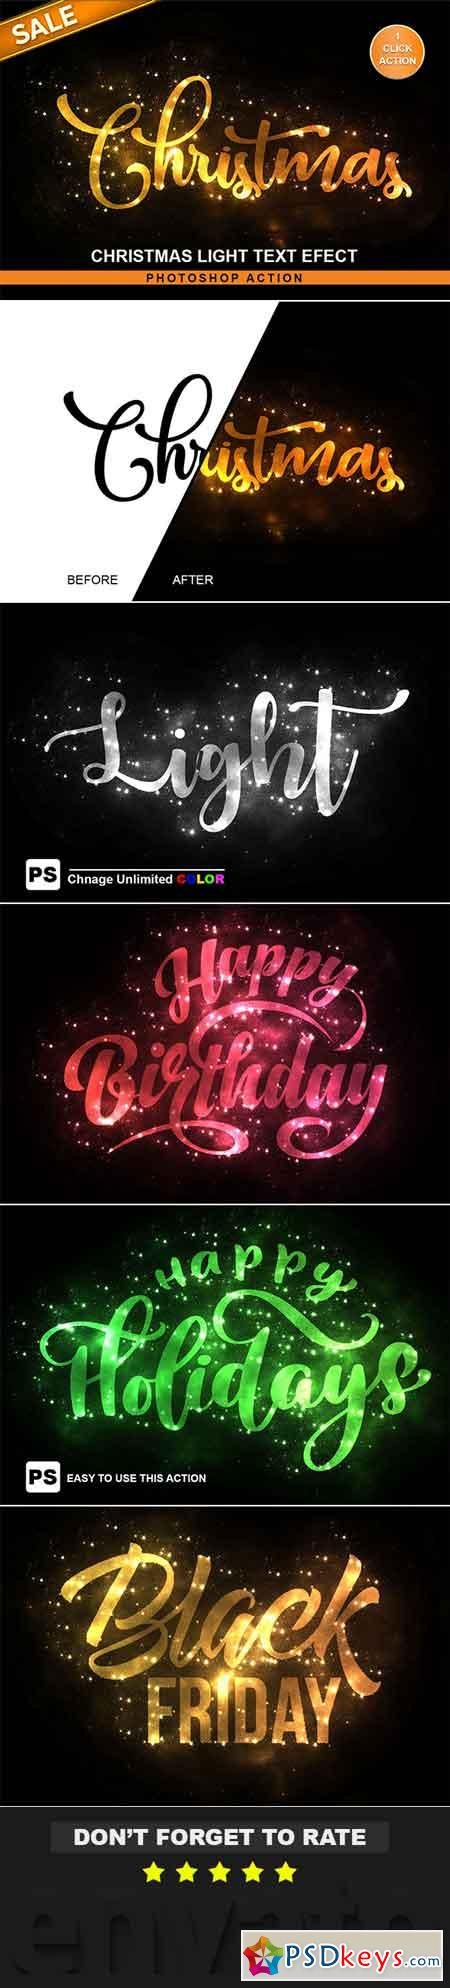 Christmas Text Effect Photoshop Action 22681467